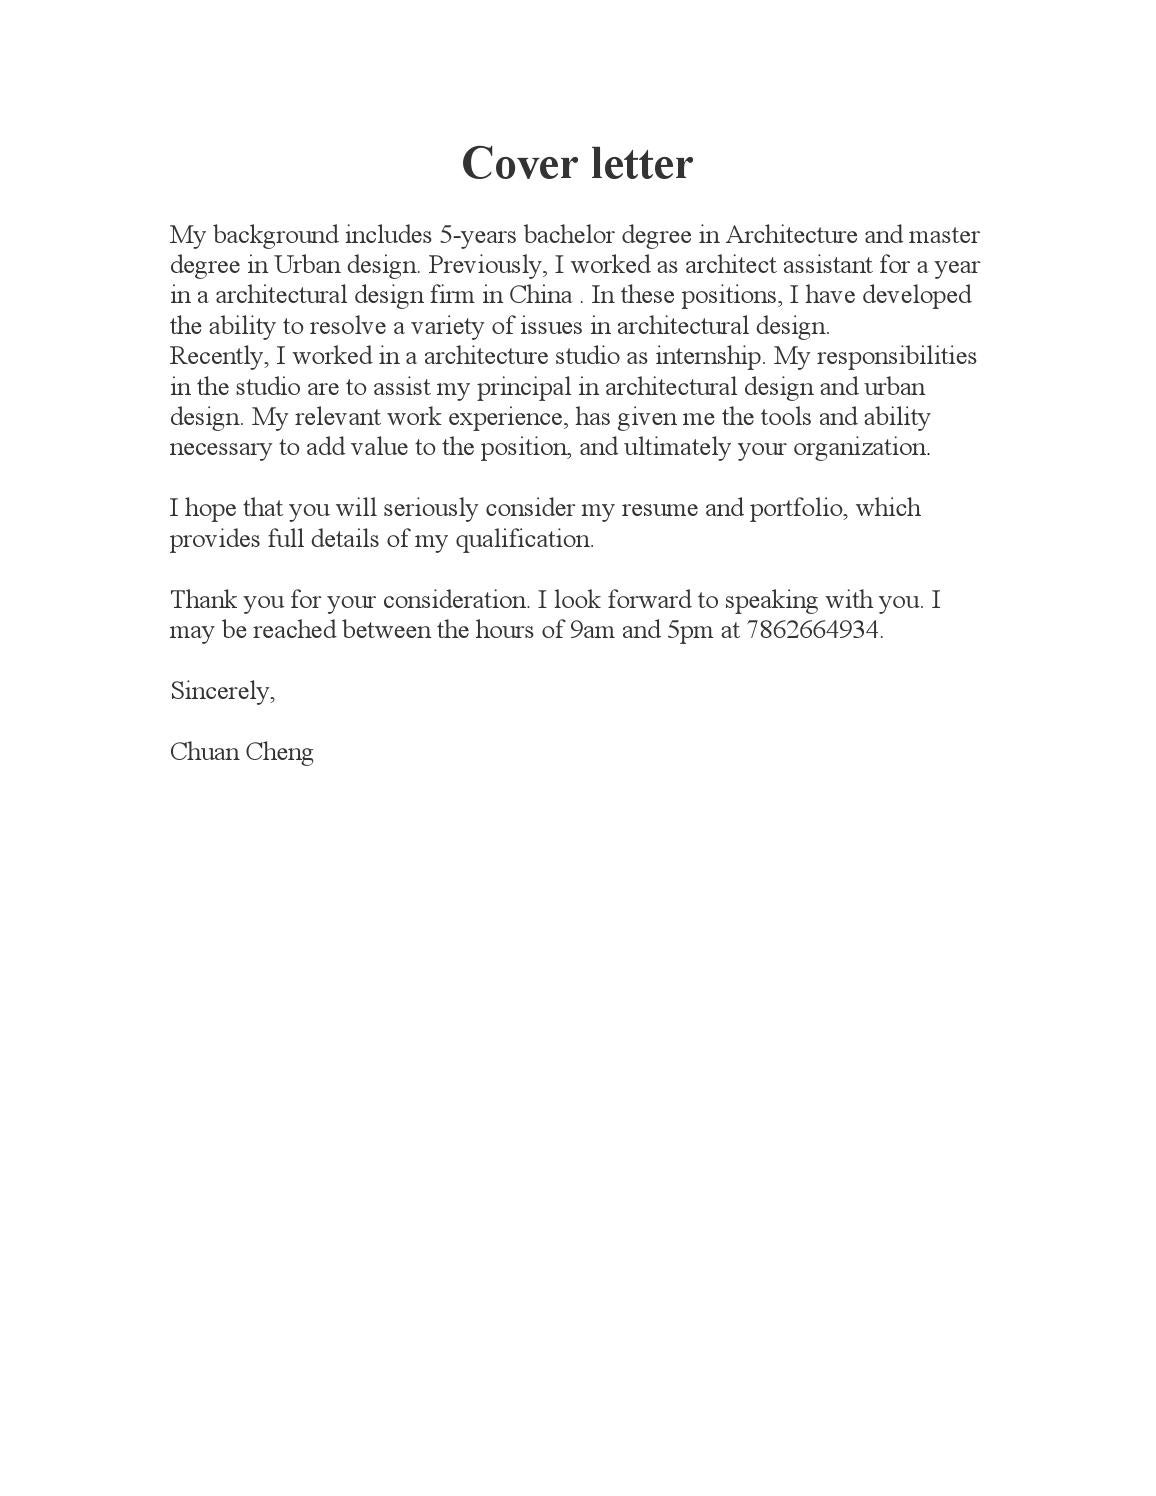 Cover Letter Resume Portfolio7 By Chuancheng Issuu